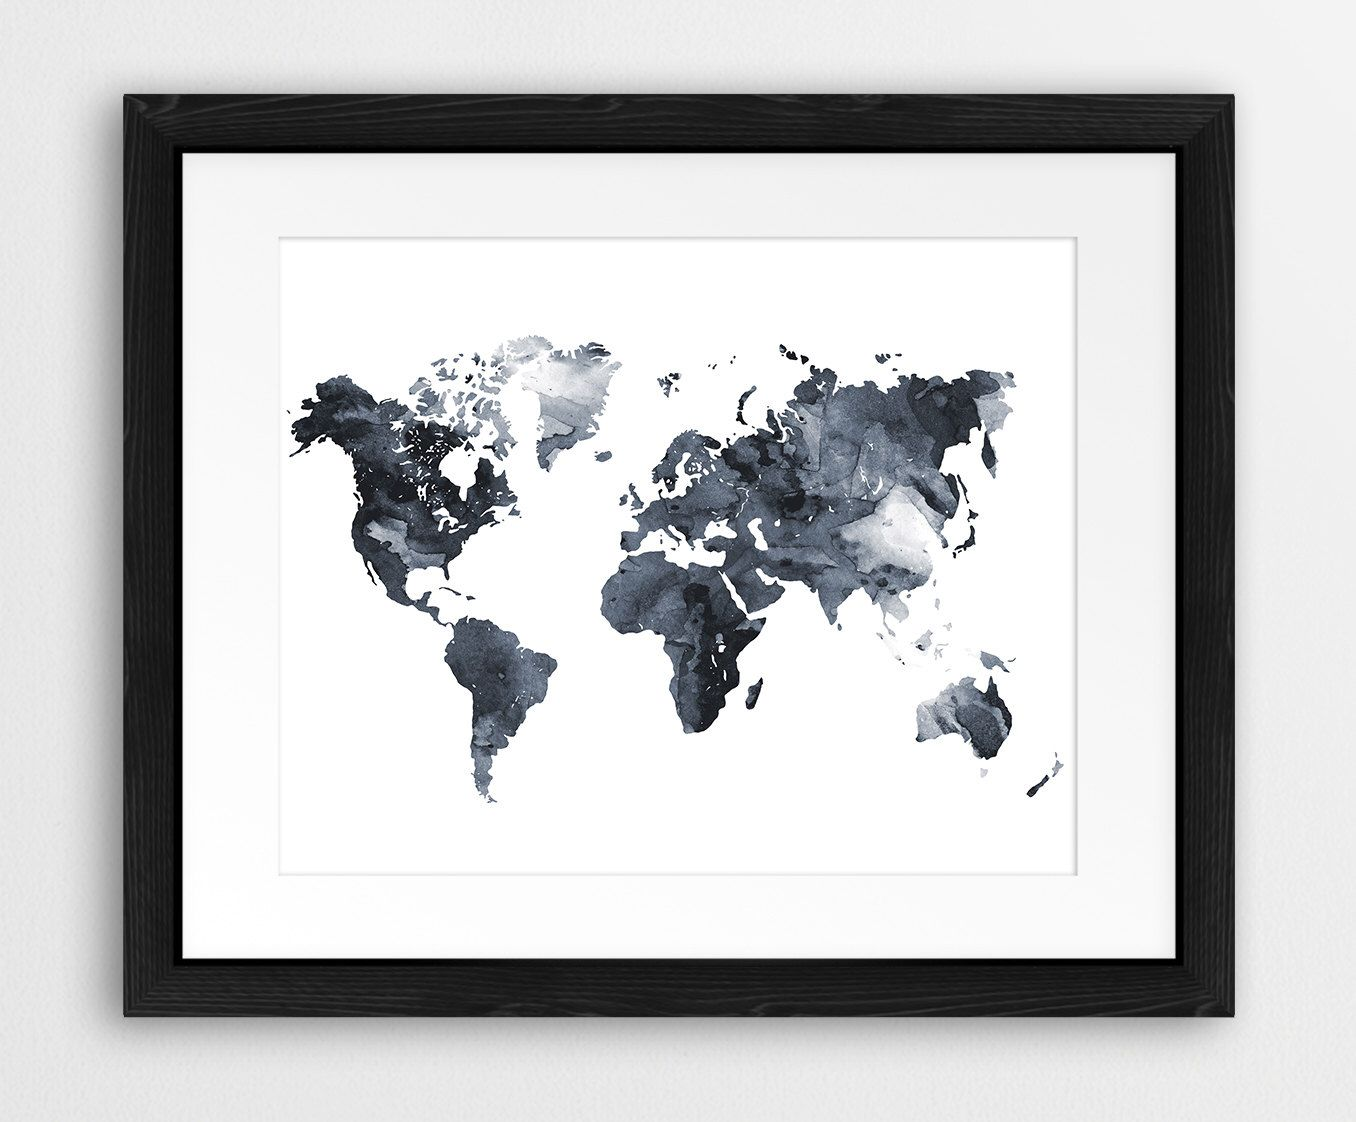 World map watercolor printable file world map silhouette watercolor world map watercolor printable file world map silhouette watercolor grey black and white modern gumiabroncs Choice Image